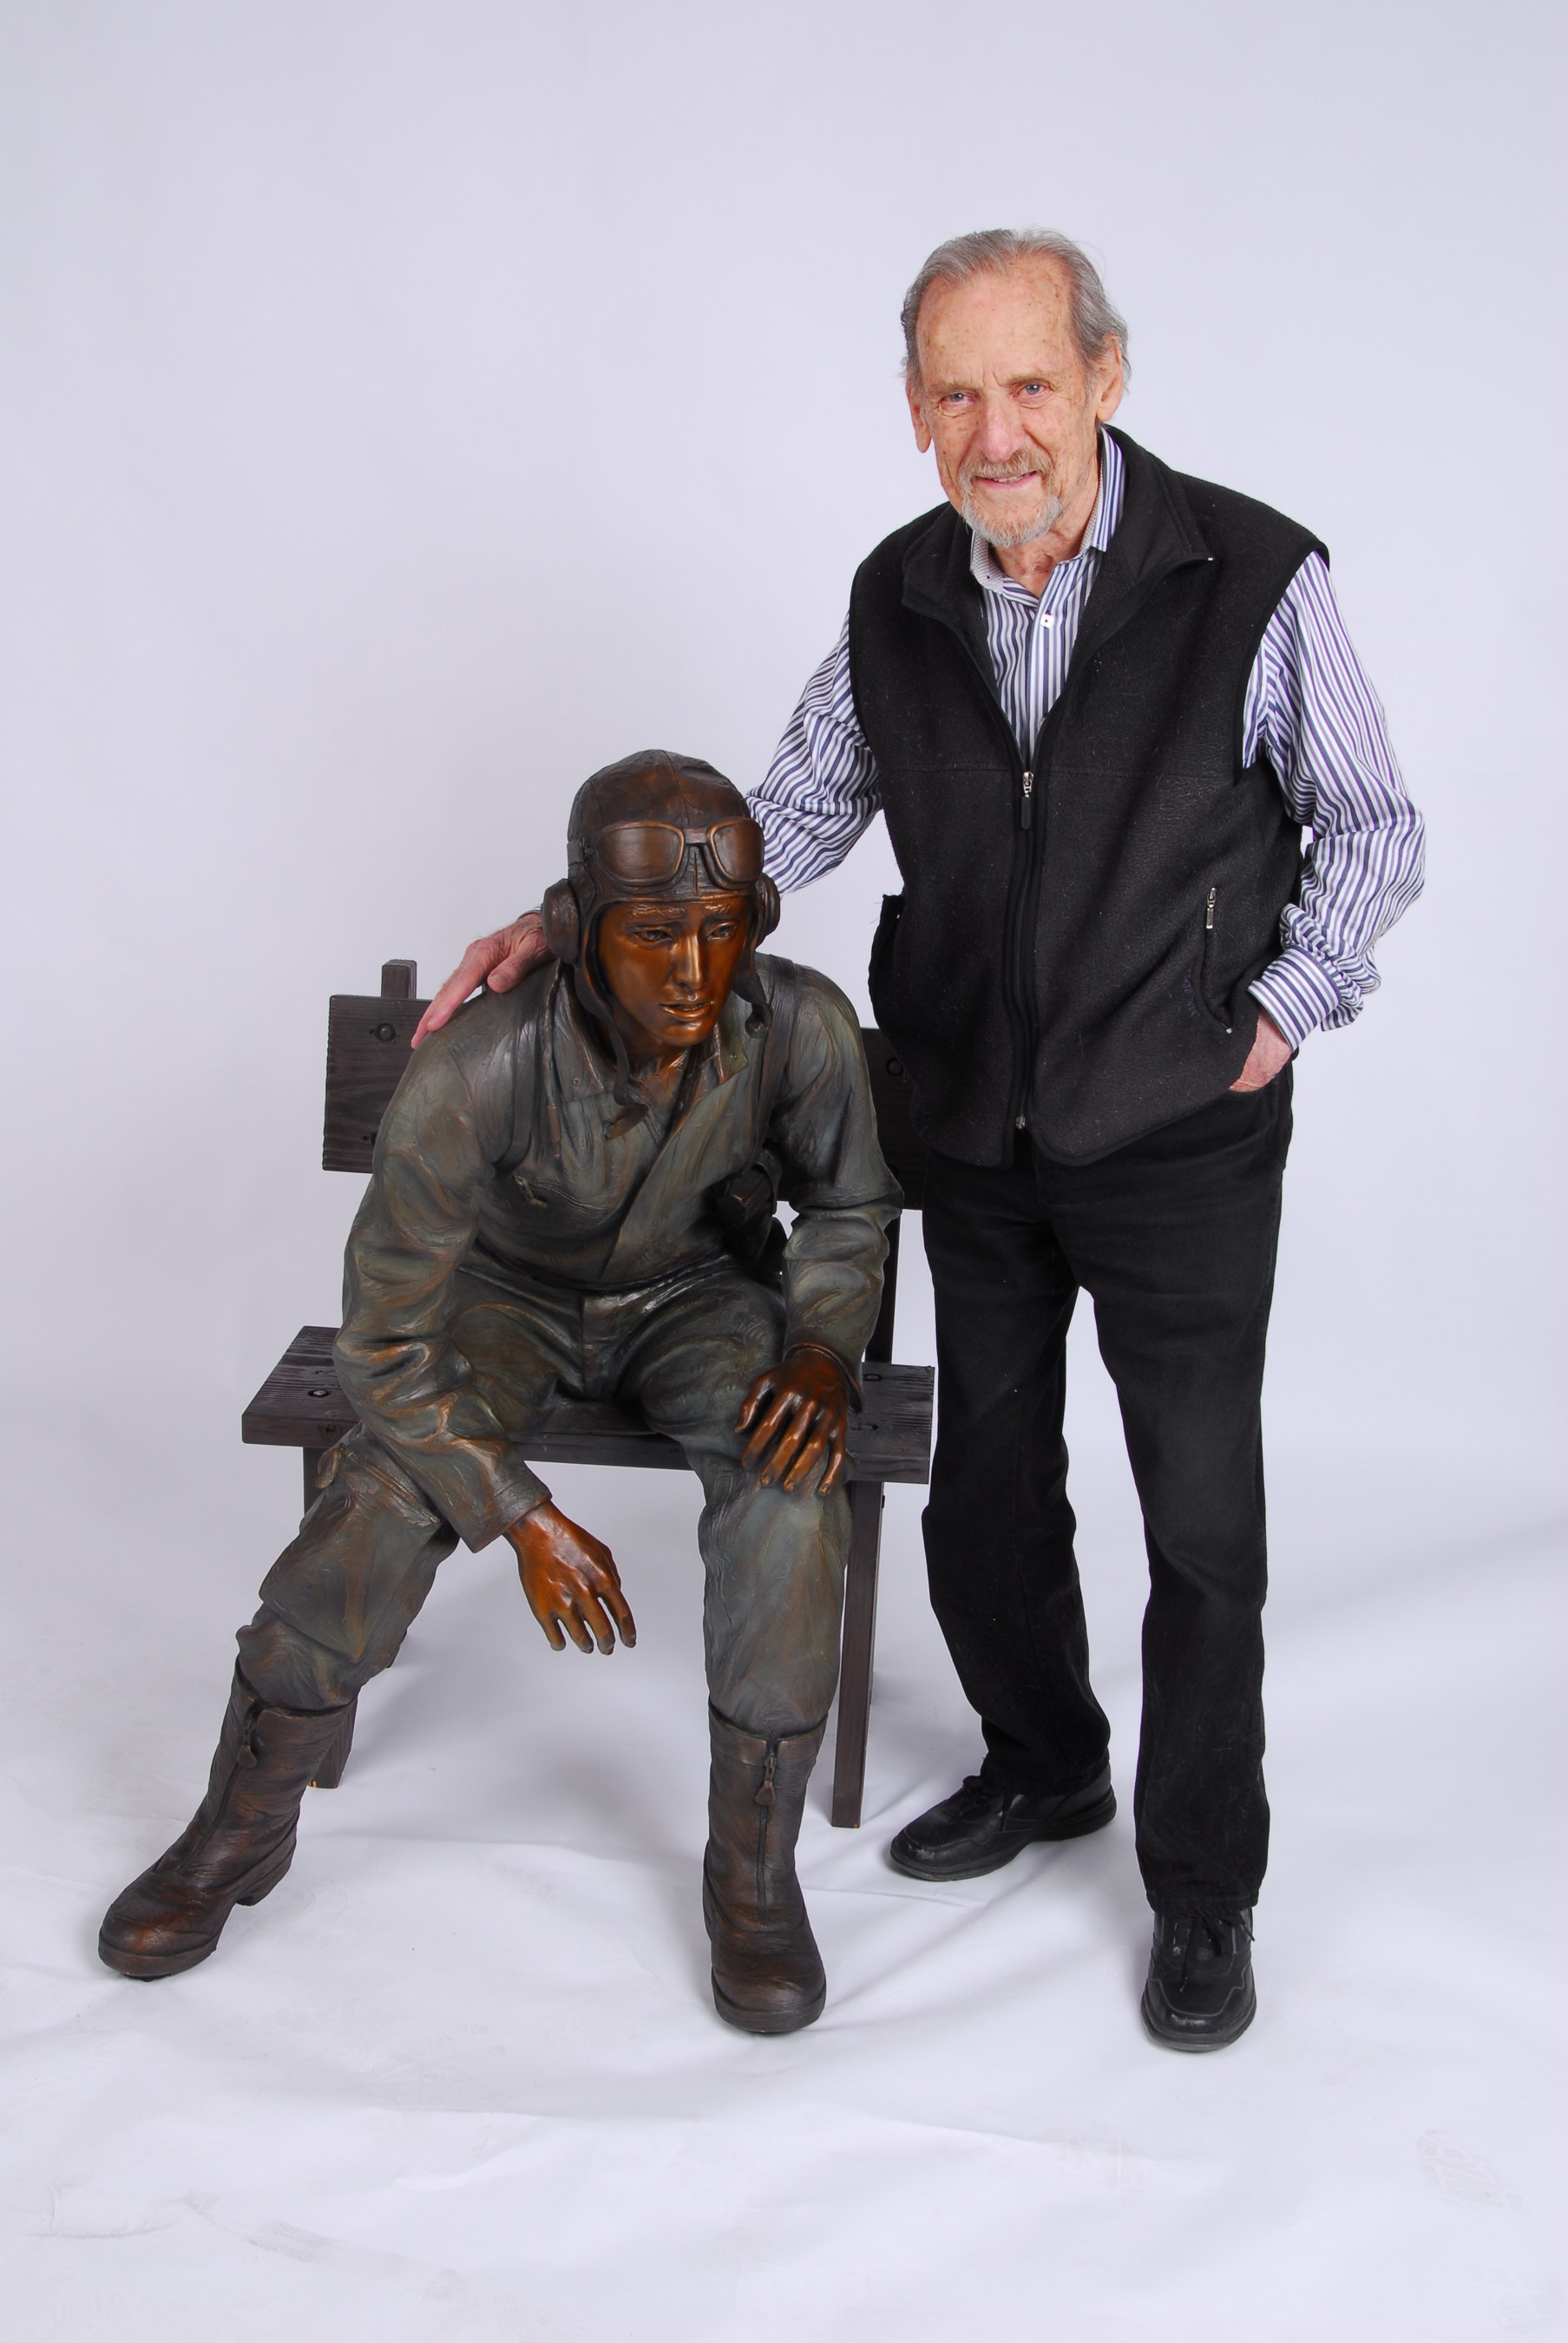 Major Fredric Arnold, USAAC (ret.) stands with TEENAGER, one of twelve life-size bronze statues he created to honor the 88,000 American Airmen who died in WWII.